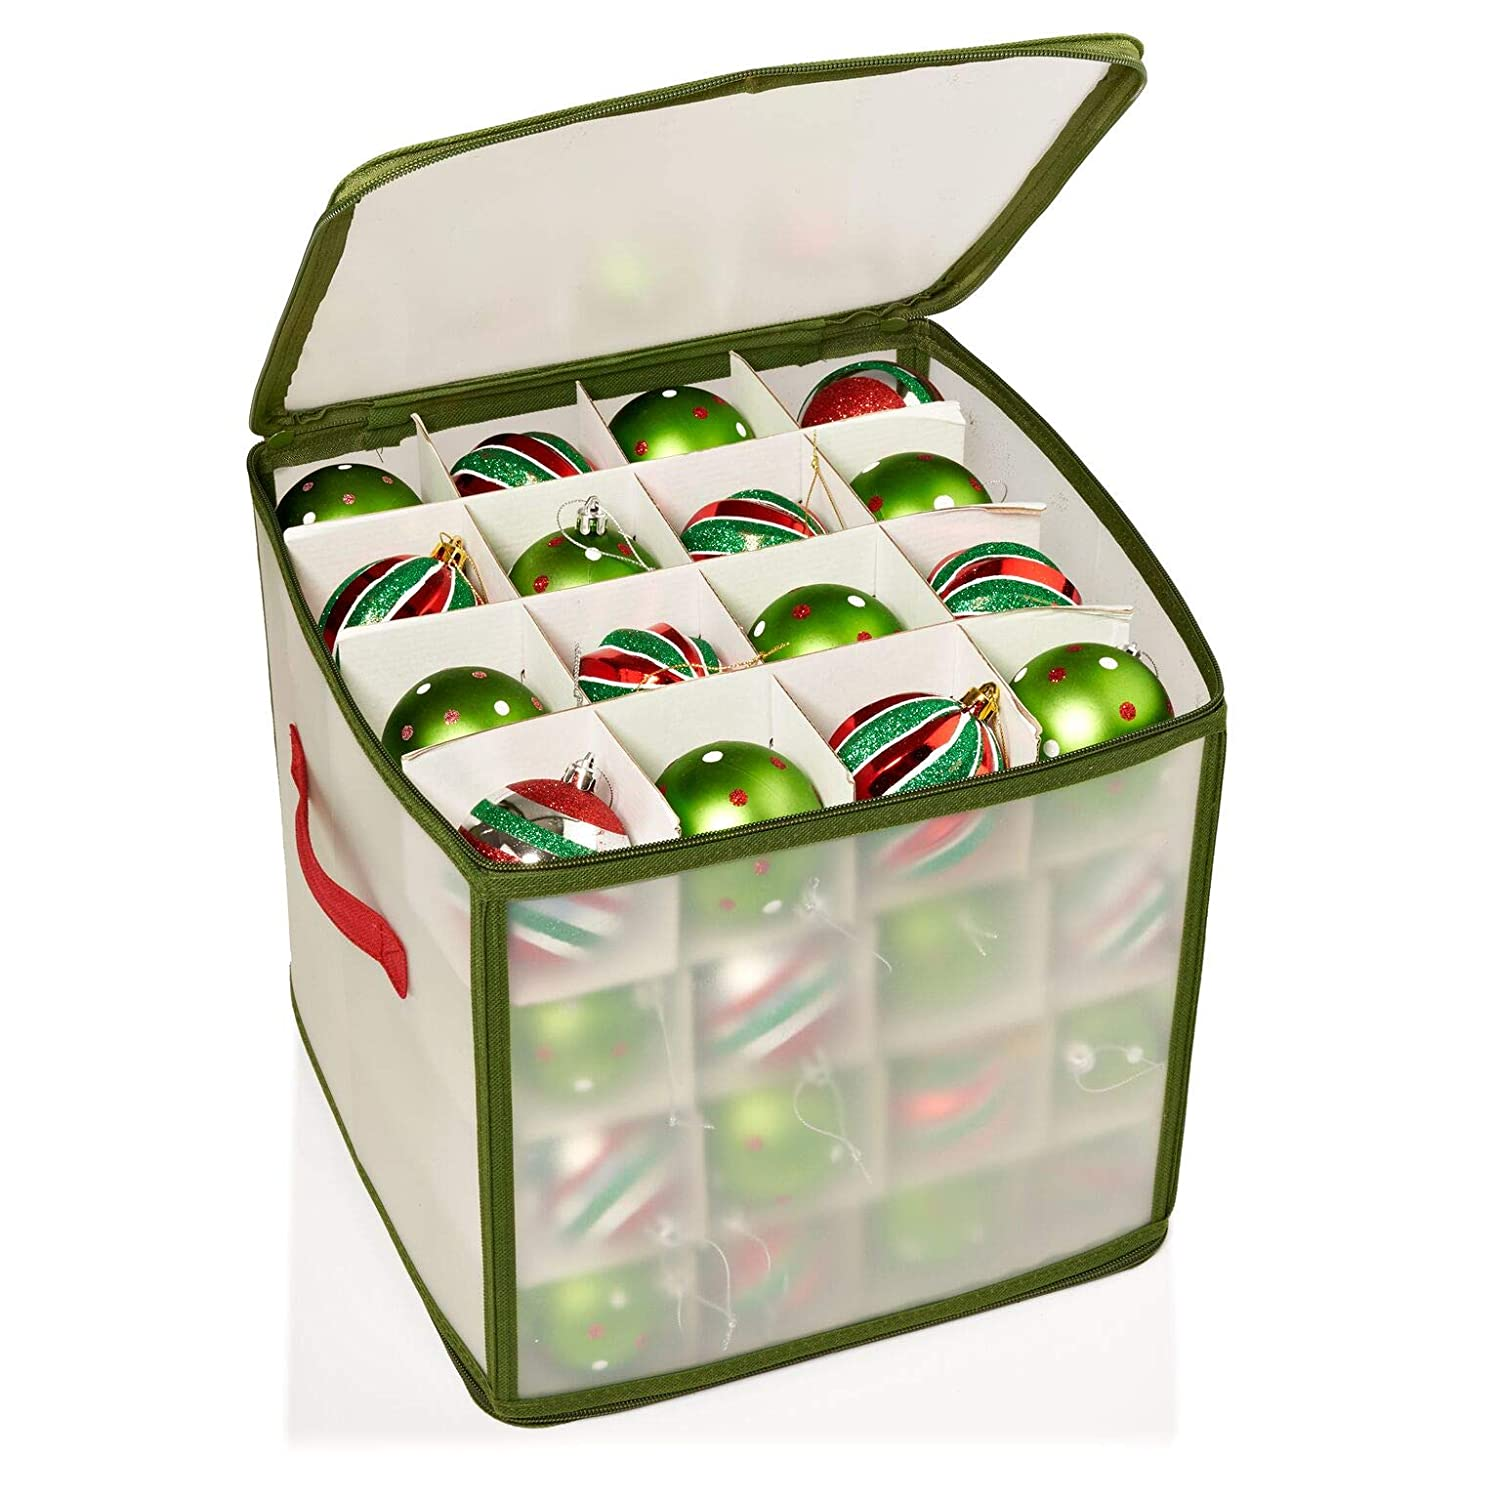 Home Basics Easy Storage  64 Compartment Zippered Christmas Ornament  Box Tote Chest, with Handles,  Holds 64 Ornaments That are up to  3 inch in Diameter HDS Trading Corp CS49888